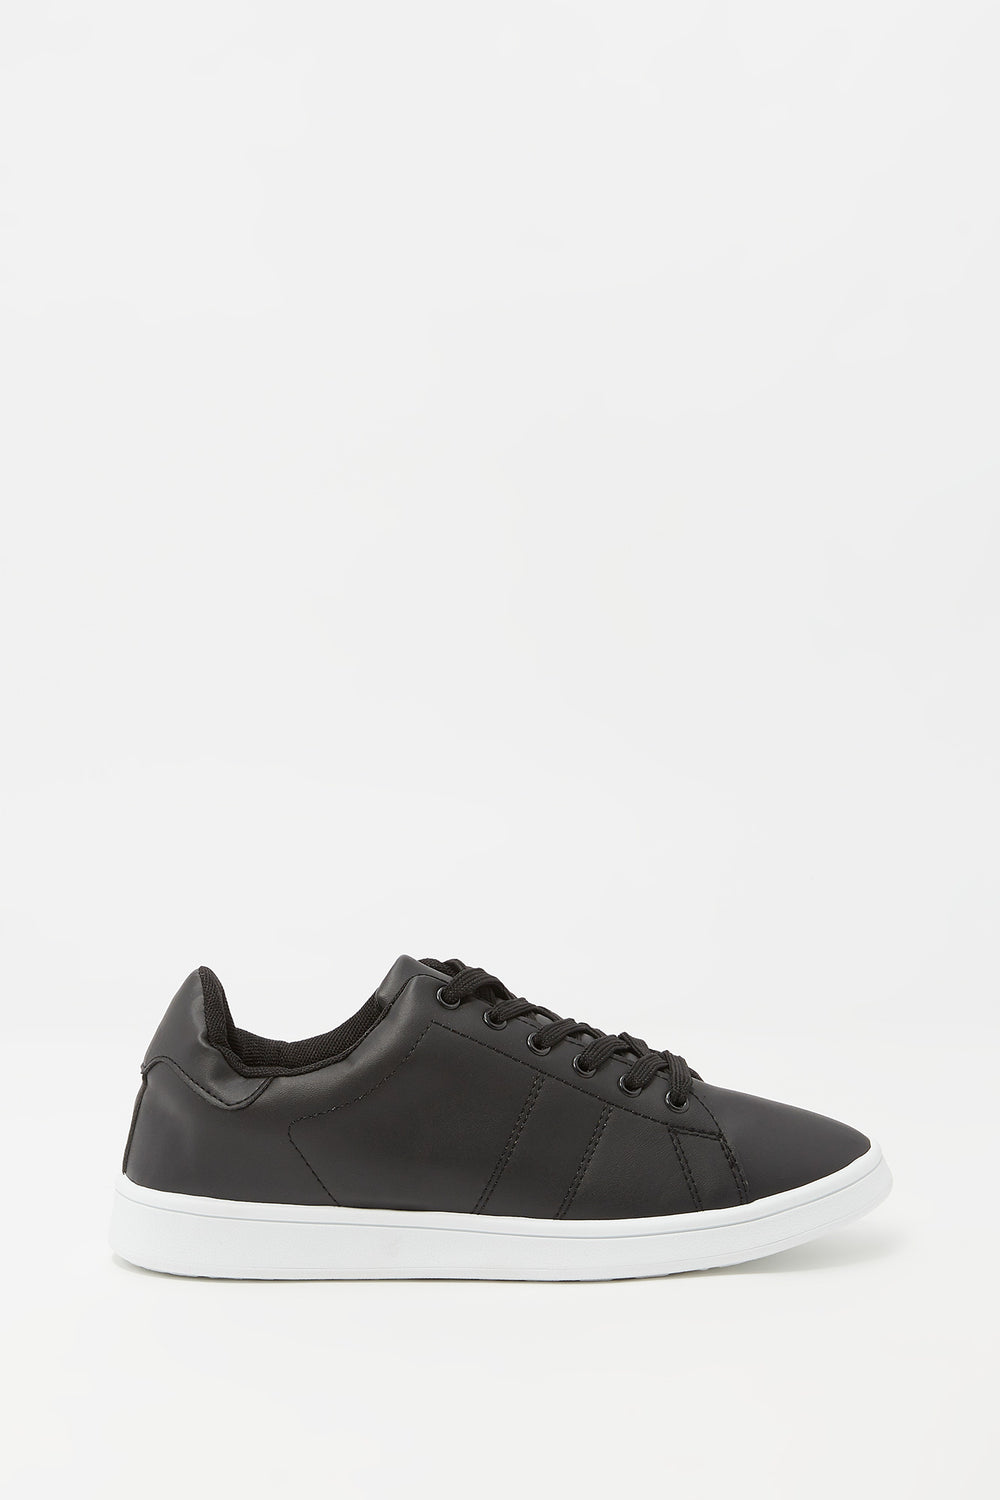 Lace-Up Faux Leather Tonal Sneaker Black